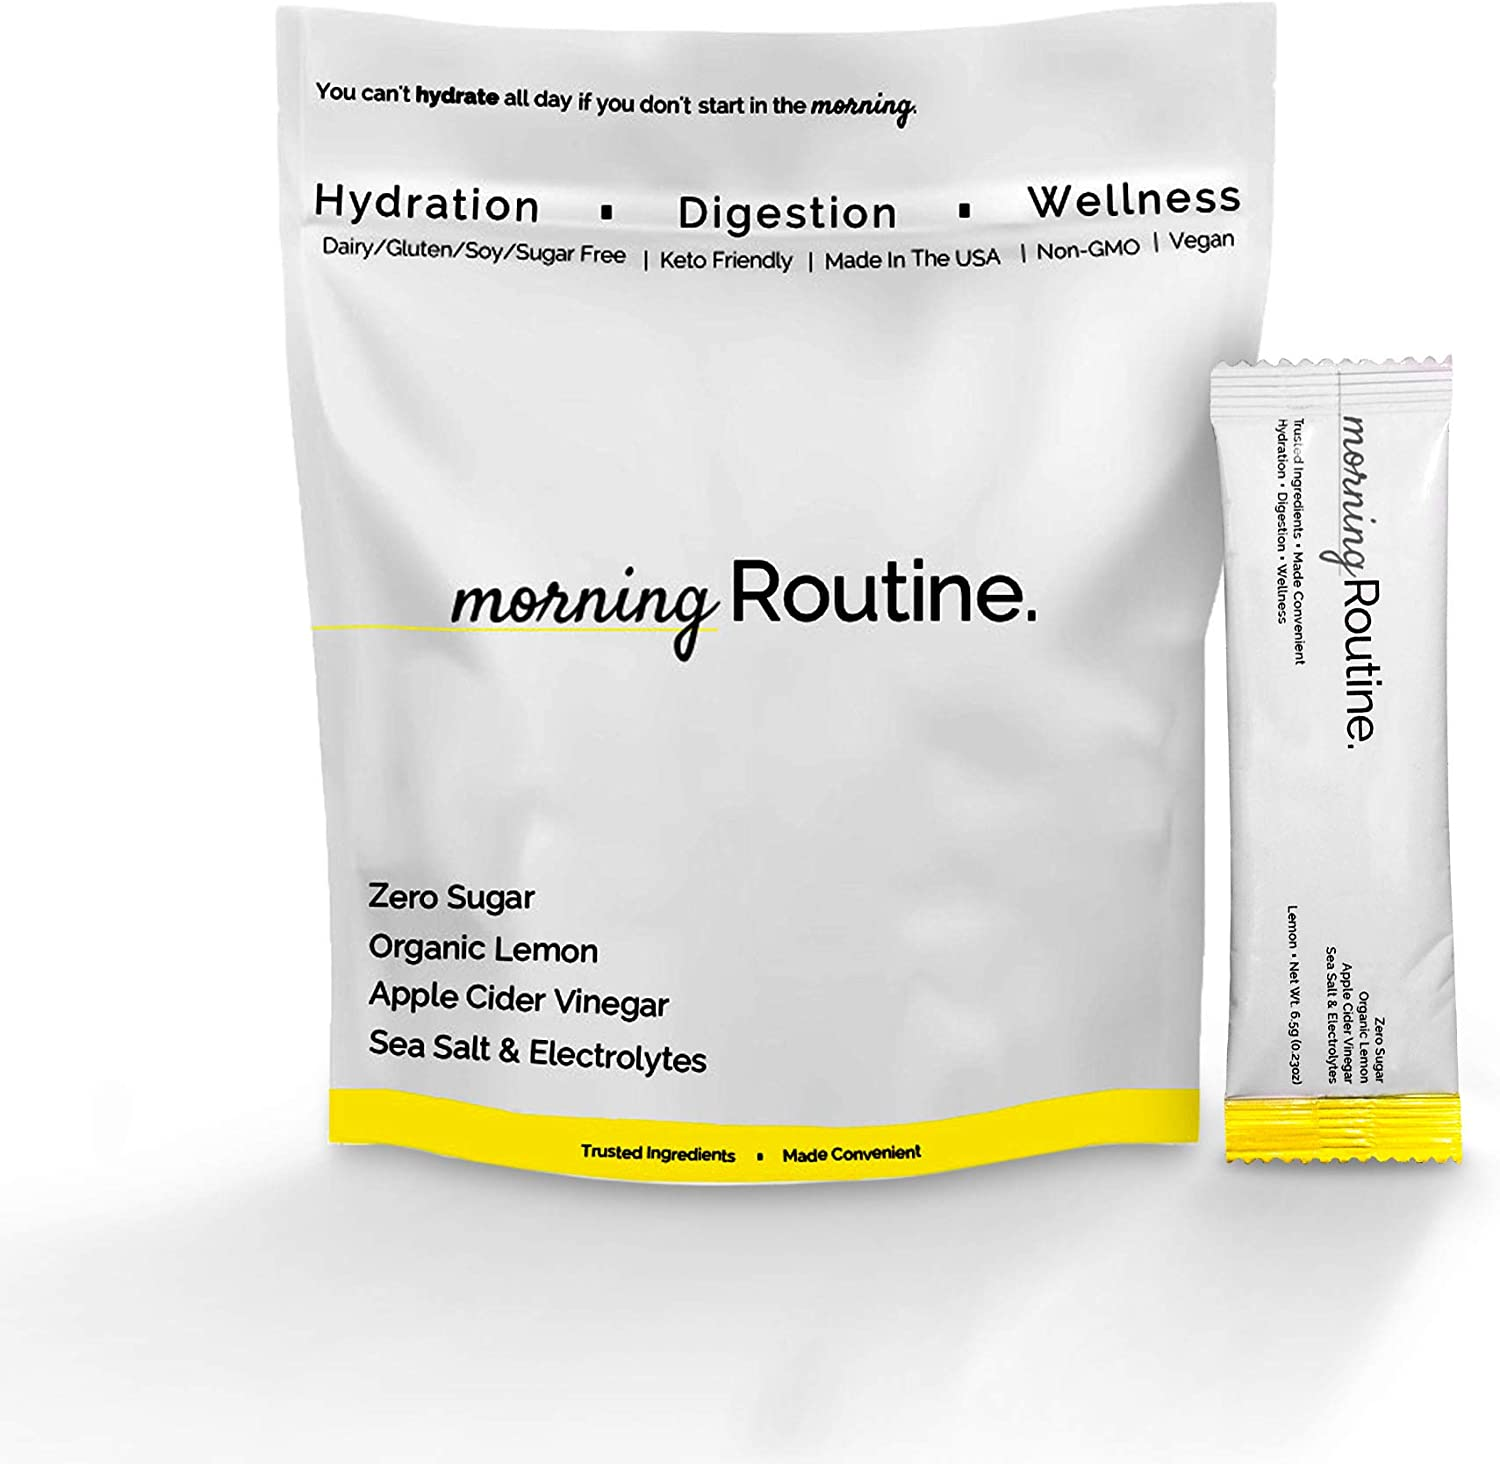 Morning Routine Daily Hydration | Electrolyte Powder Packets with Apple Cider Vinegar, Lemon and Sea Salt | Electrolyte Mix | Keto & Paleo | Pack of 30 Sticks | Routine